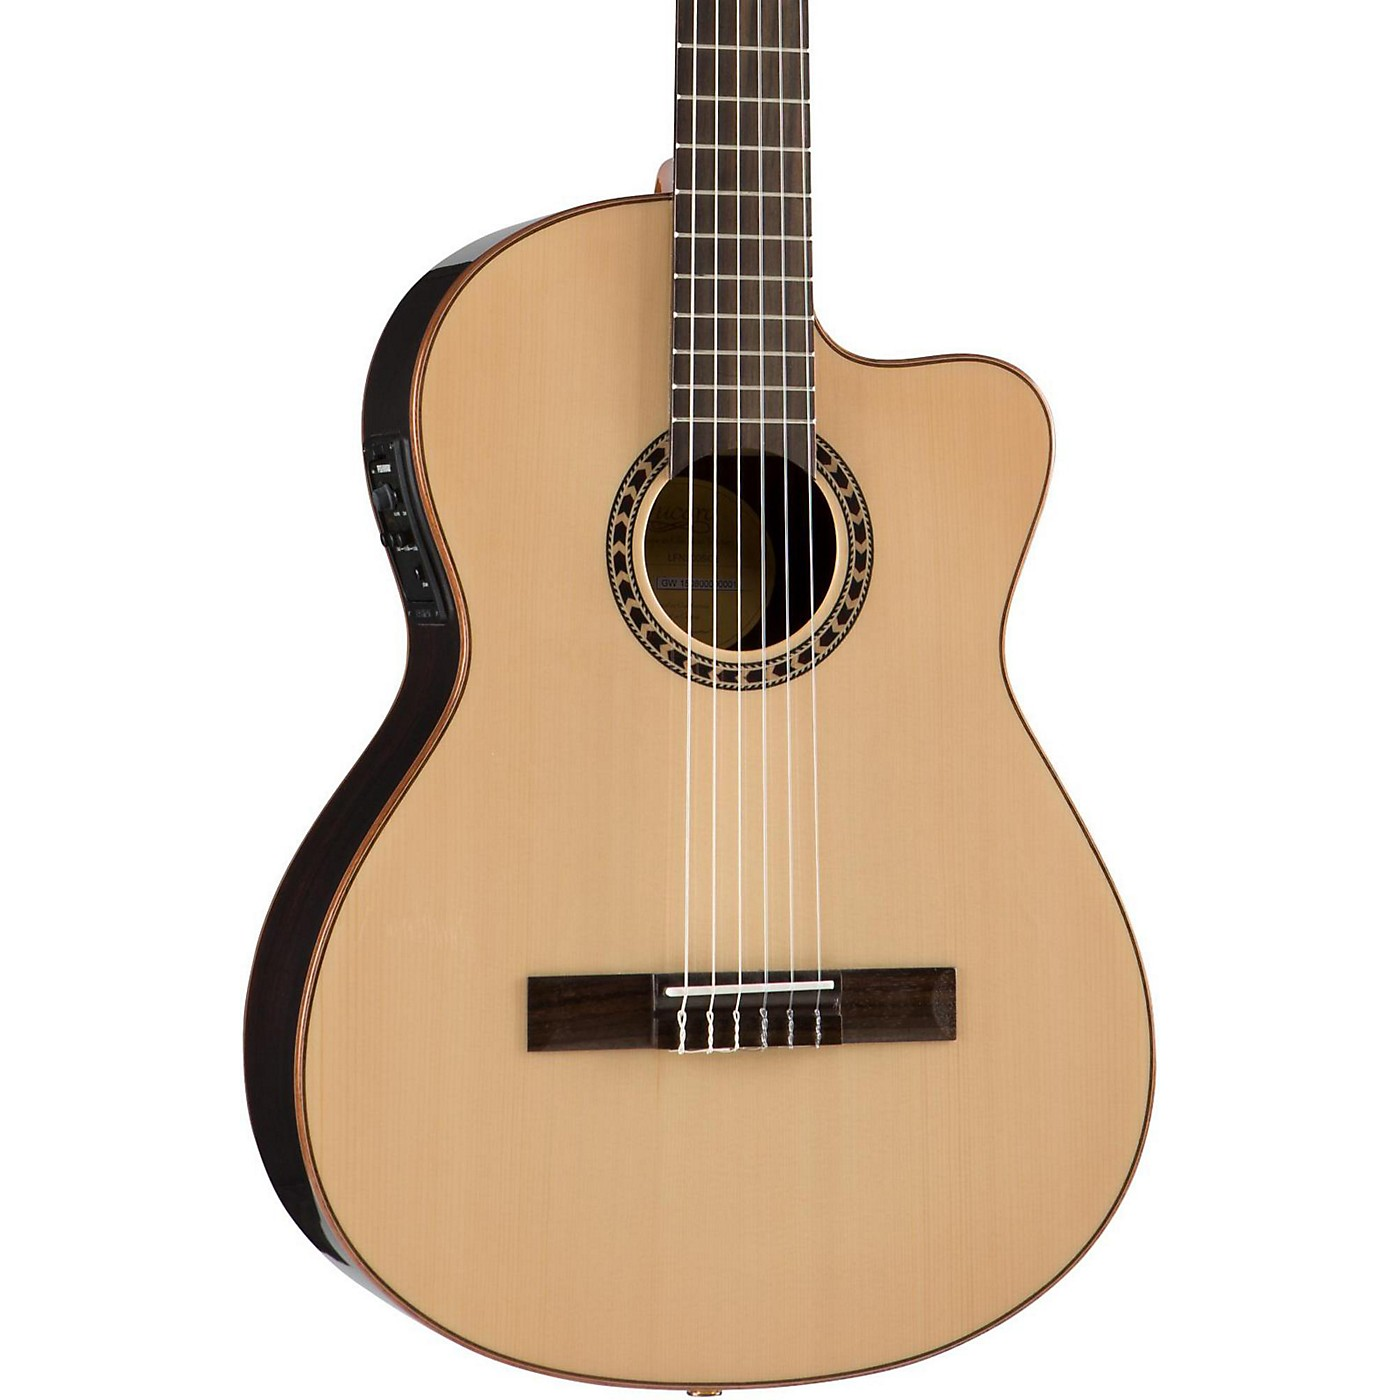 Lucero LFN200SCE Spruce/Rosewood Thinline Acoustic-Electric Classical Guitar thumbnail